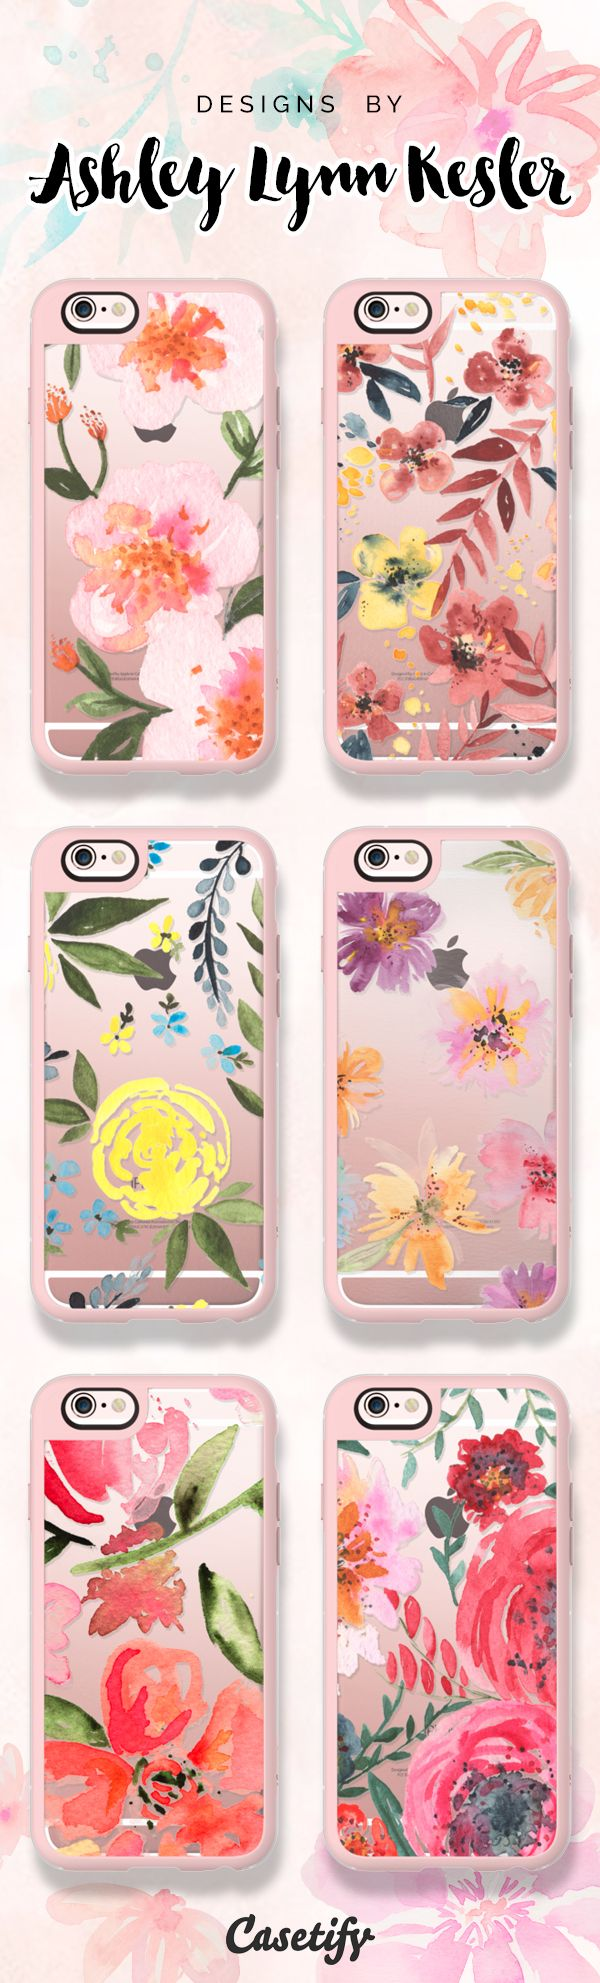 Click through to shop these iPhone 6/6S Case designs by Ashley Lynn Kesler >>> https://www.casetify.com/ashleylkesler/collection #phonecase | @casetify